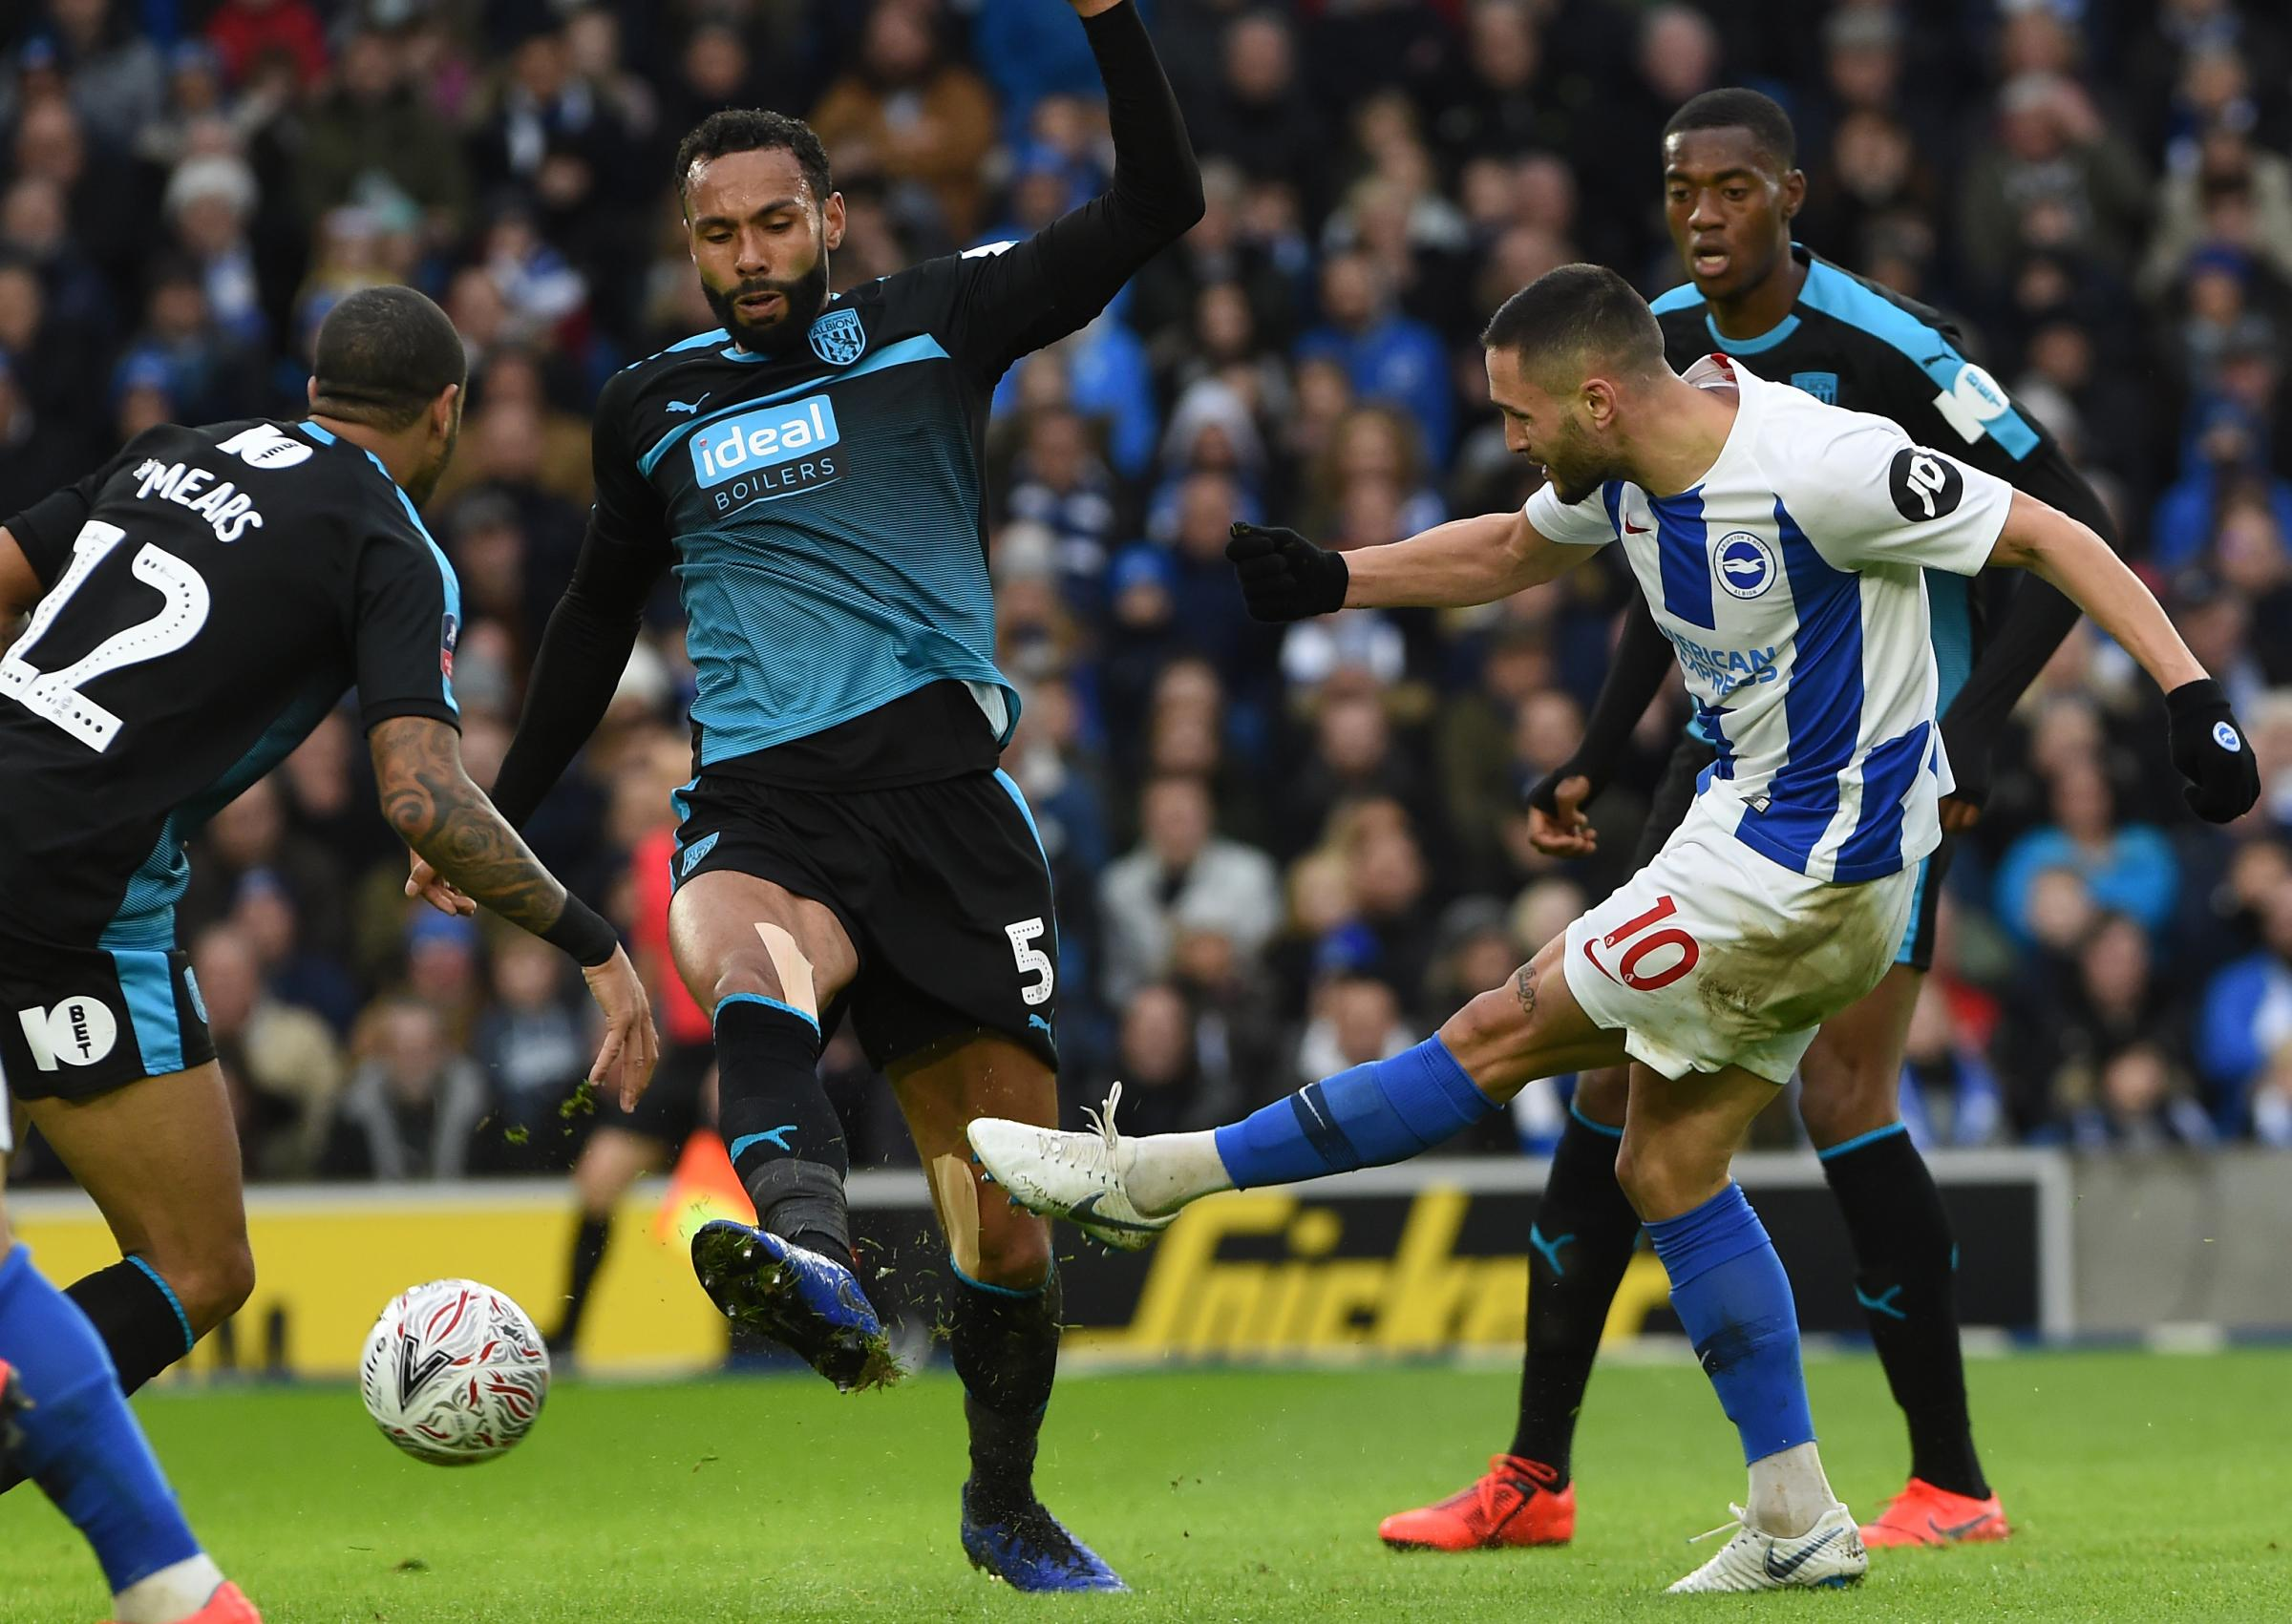 Andone's ban has left Albion light up front admits boss